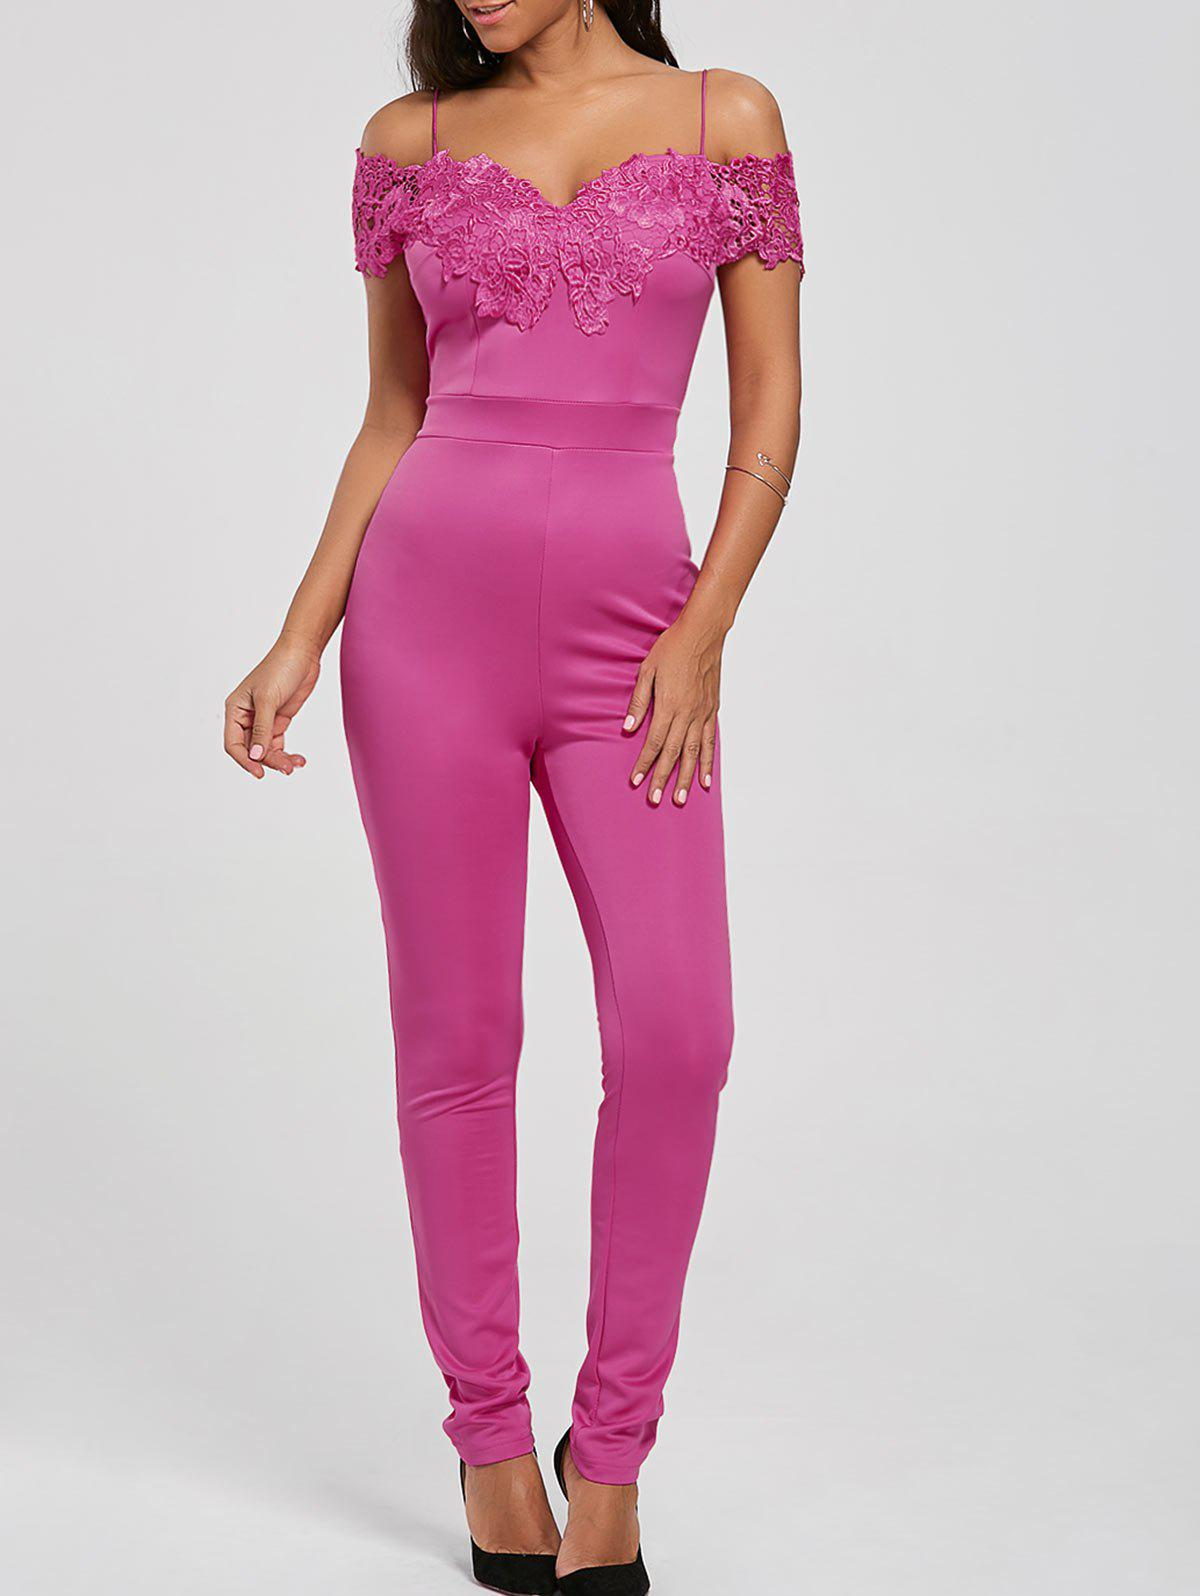 Lace Applique Low Cut Cold Shoulder Jumpsuit - TUTTI FRUTTI M